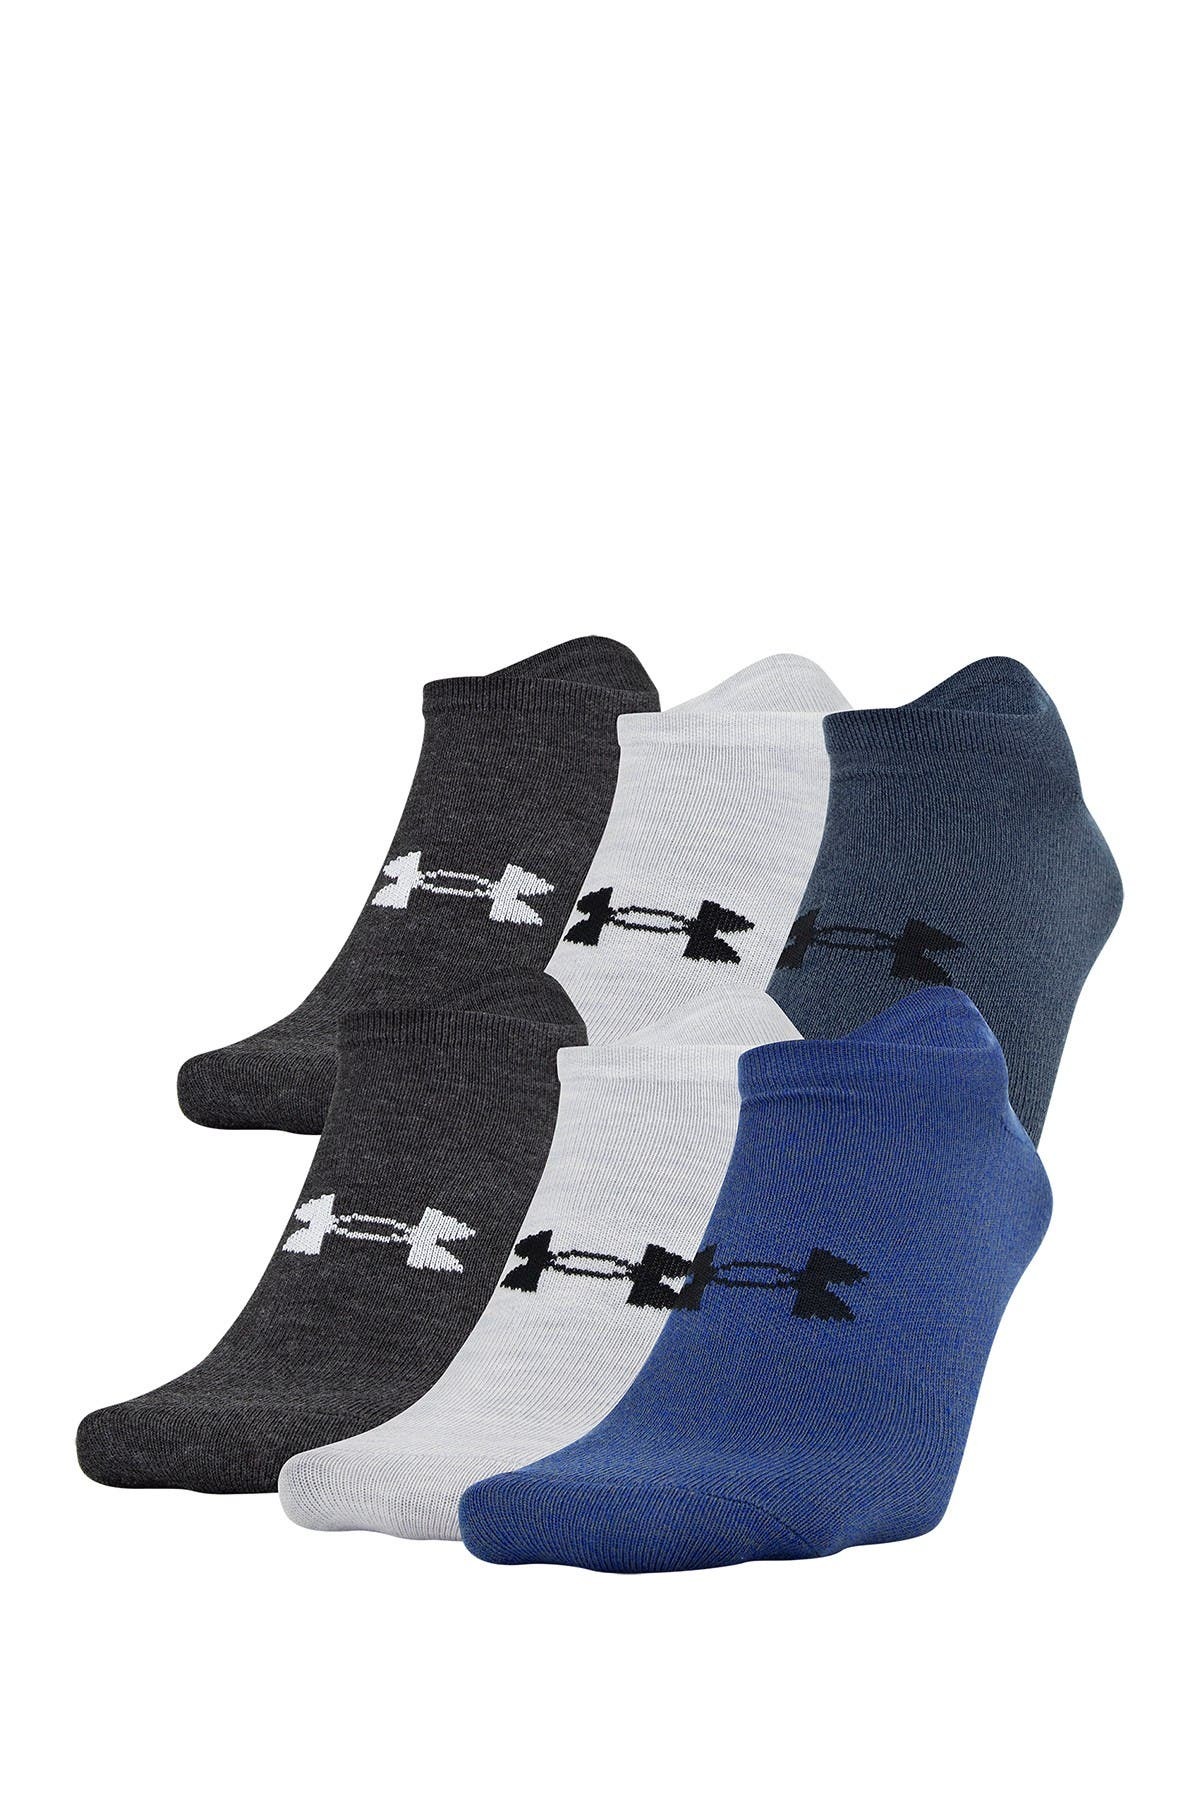 Image of Under Armour Essential Lite No Show Socks - Pack of 6